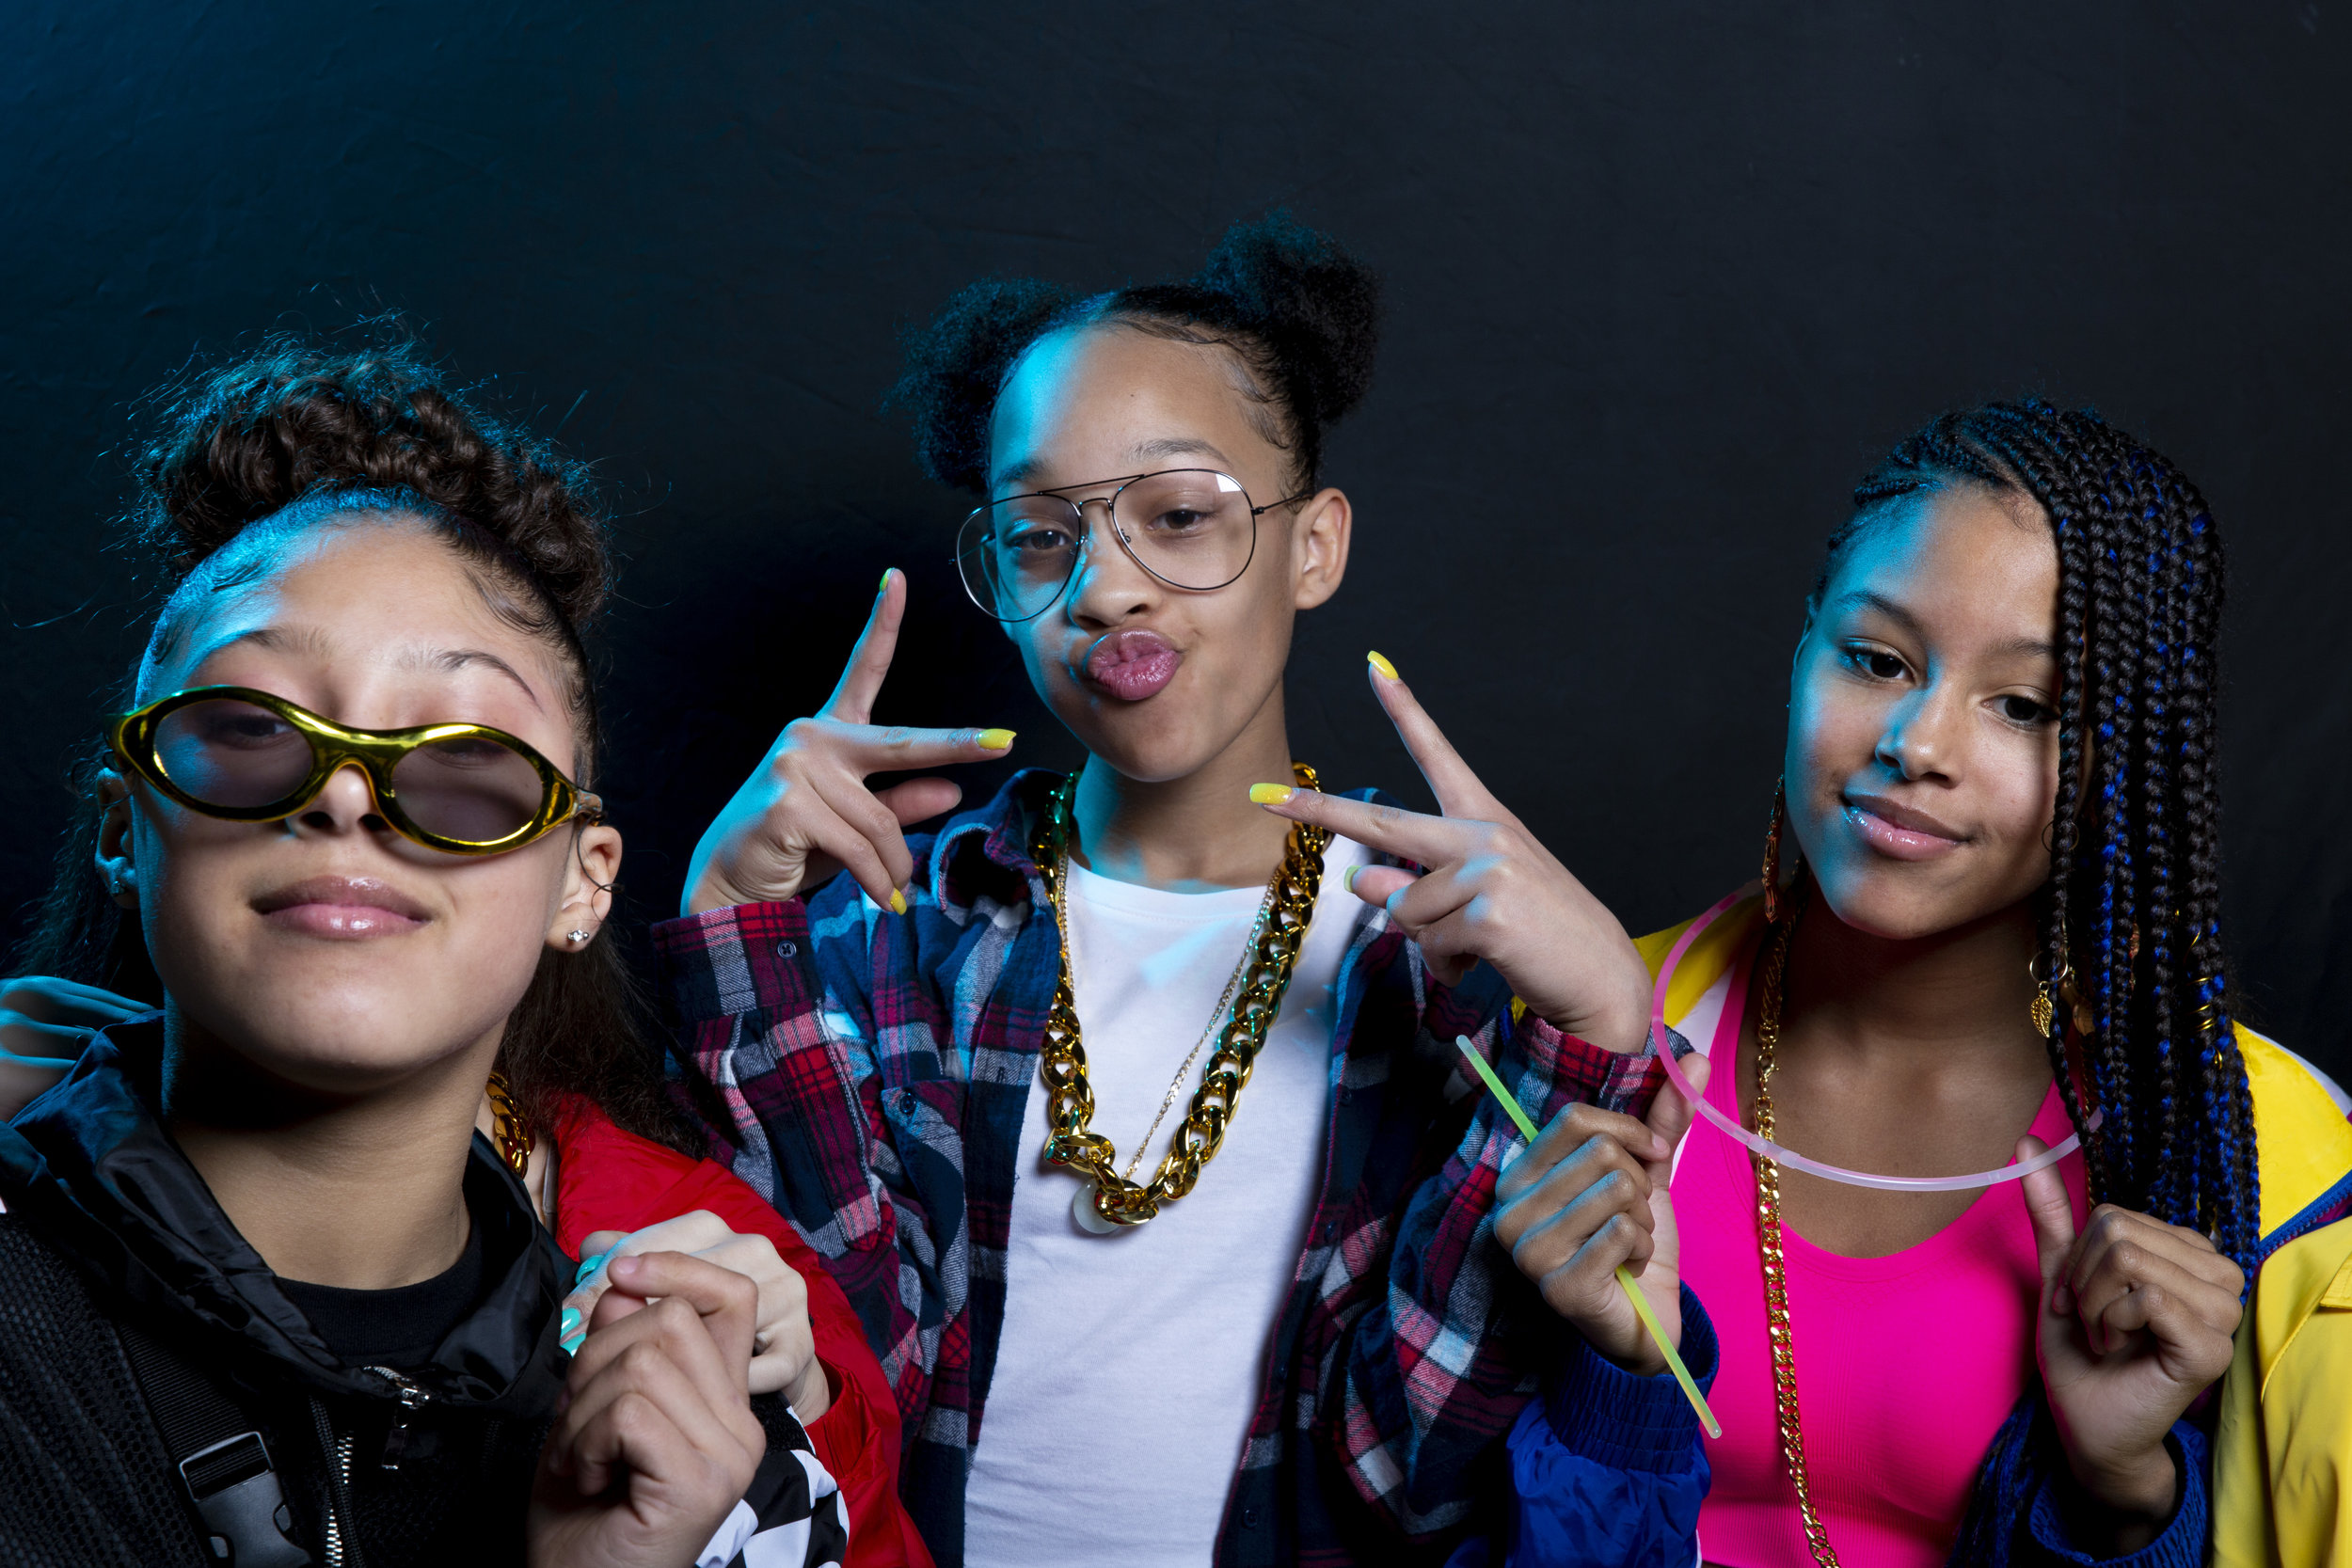 02-16-19 Kiana Hall  edits done-Giovanni The Photographer-Boston Photo Booth Rental-Cambridge_4.jpg